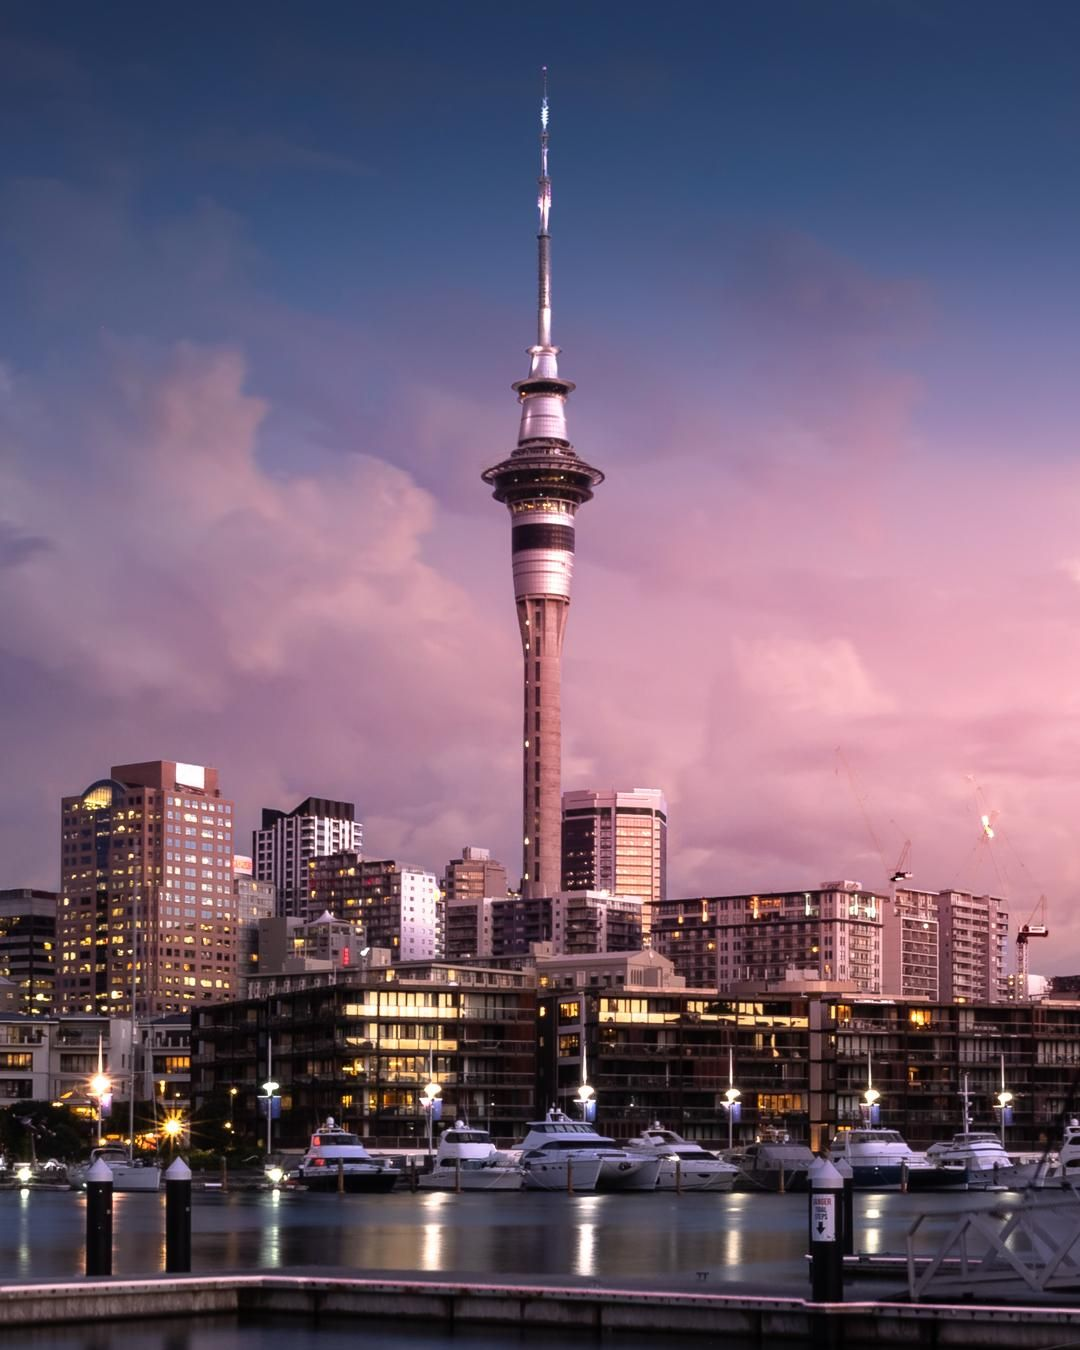 Sky Tower At Sunset Auckland Oc 1080x1350 In 2021 Auckland City New Zealand Travel Auckland Sunset sky tower lights city night